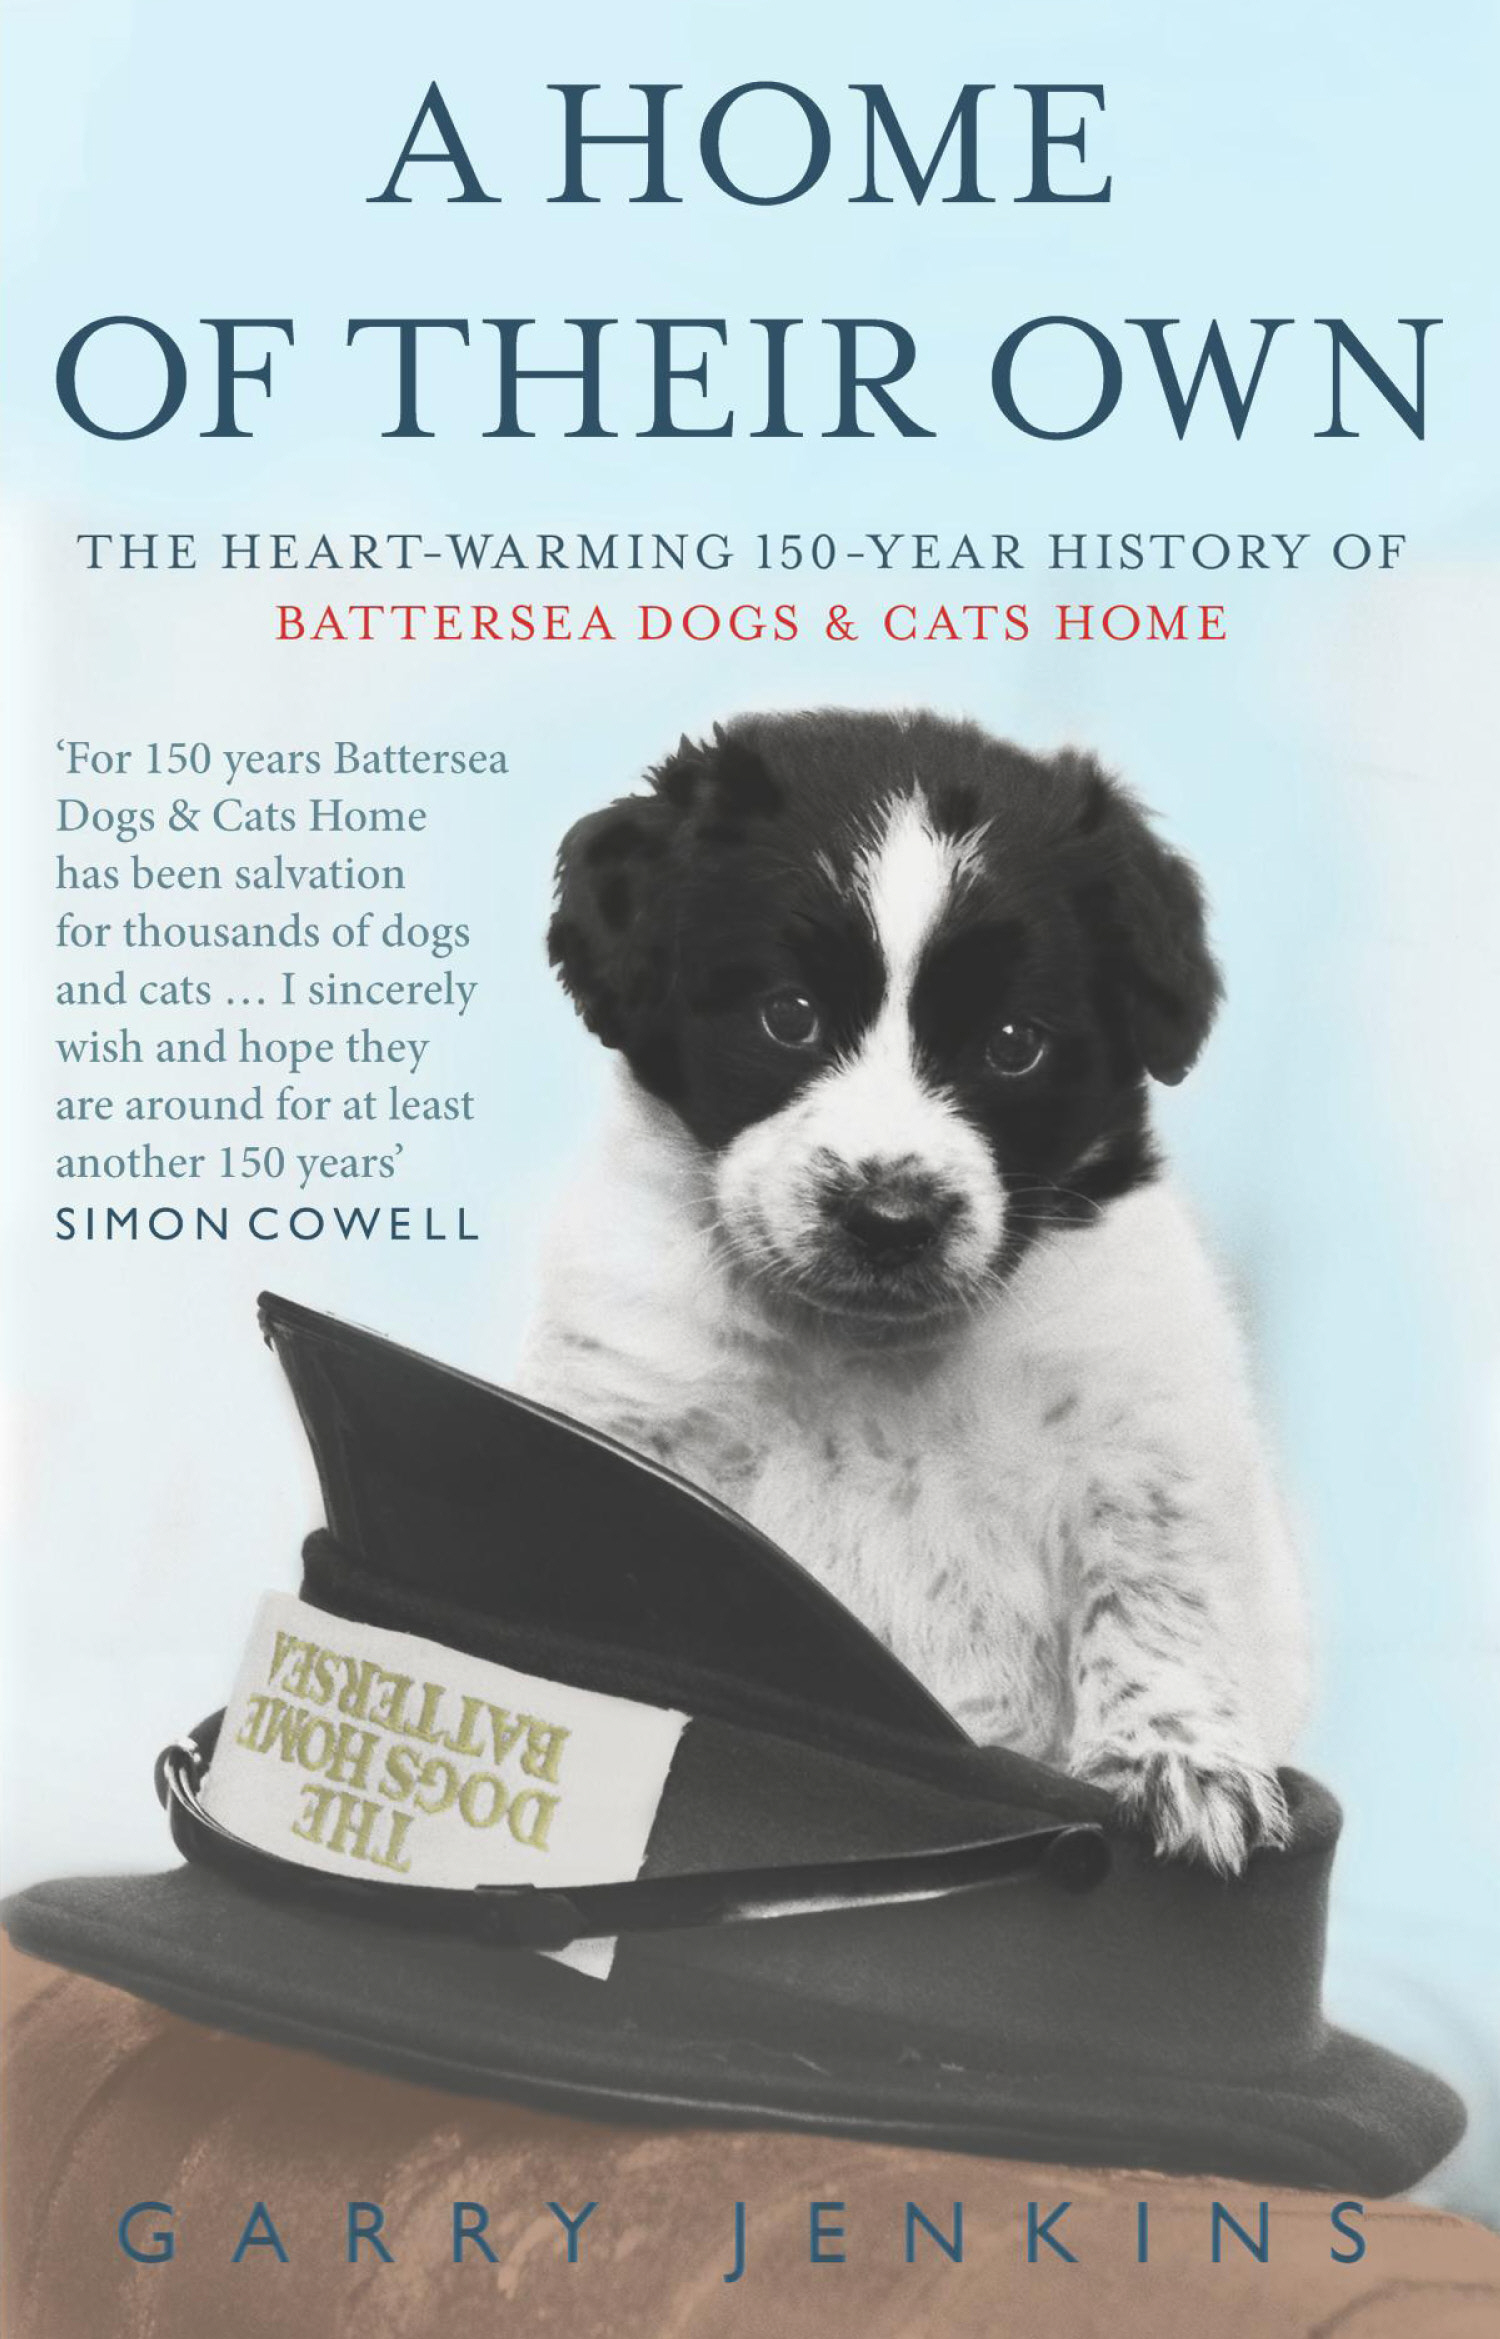 A Home of Their Own The Heart-warming 150-year History of Battersea Dogs & Cats Home